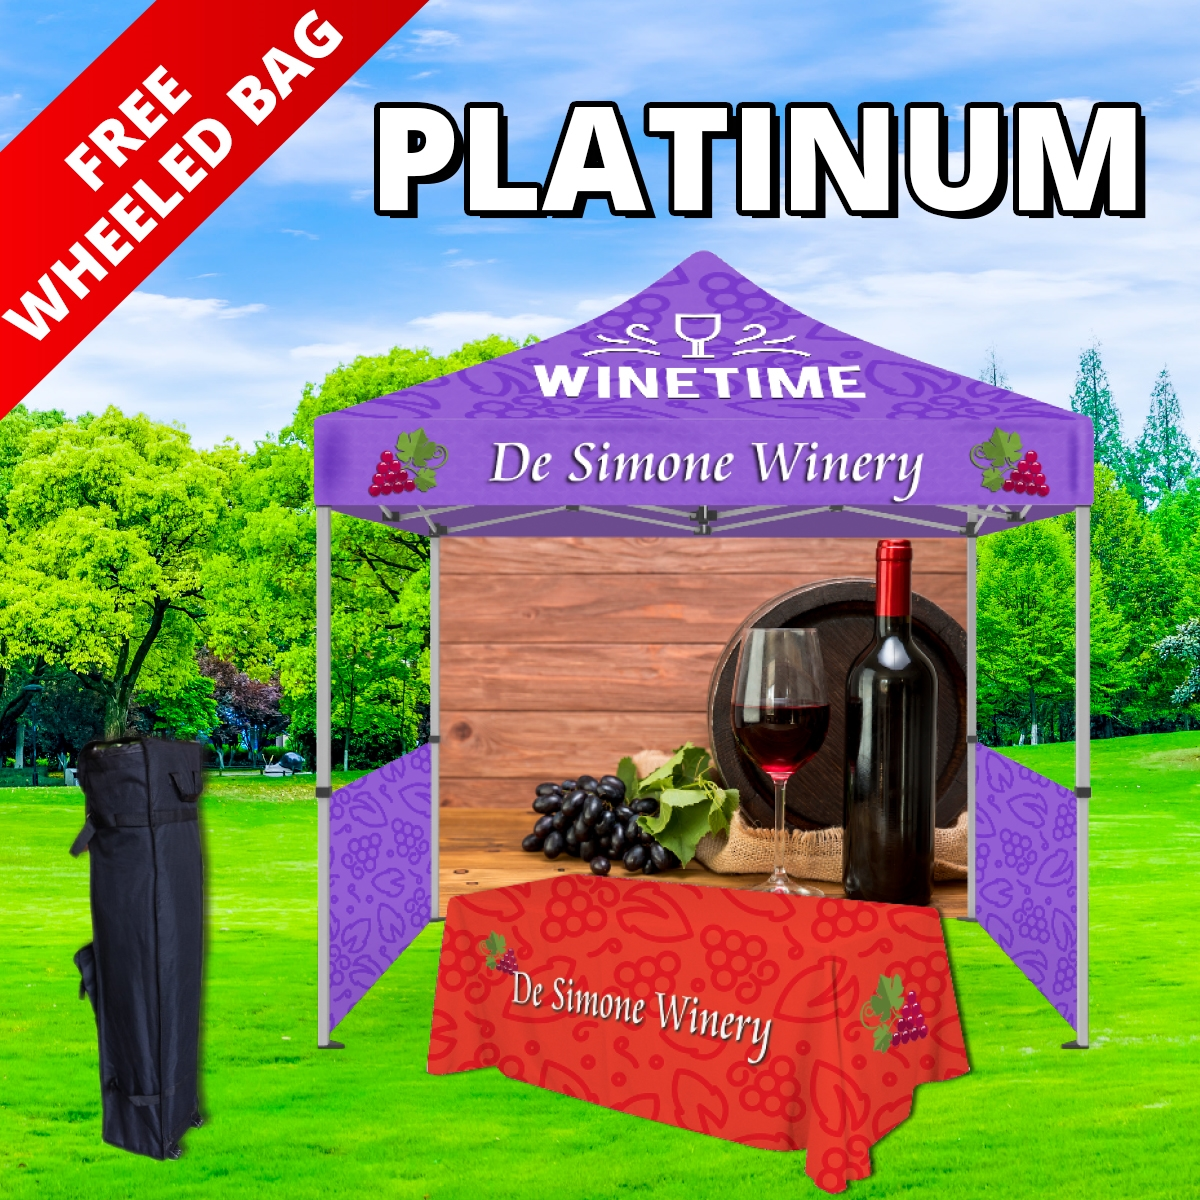 Platinum Tier Event Package - 10Ft. Steel Tent with Full Color Dye Sublimated (1) 6ft Table Throw, (1) Canopy, (1) Back Wall and (2) Side Walls with (2) Rails (1) Free Wheeled Bag